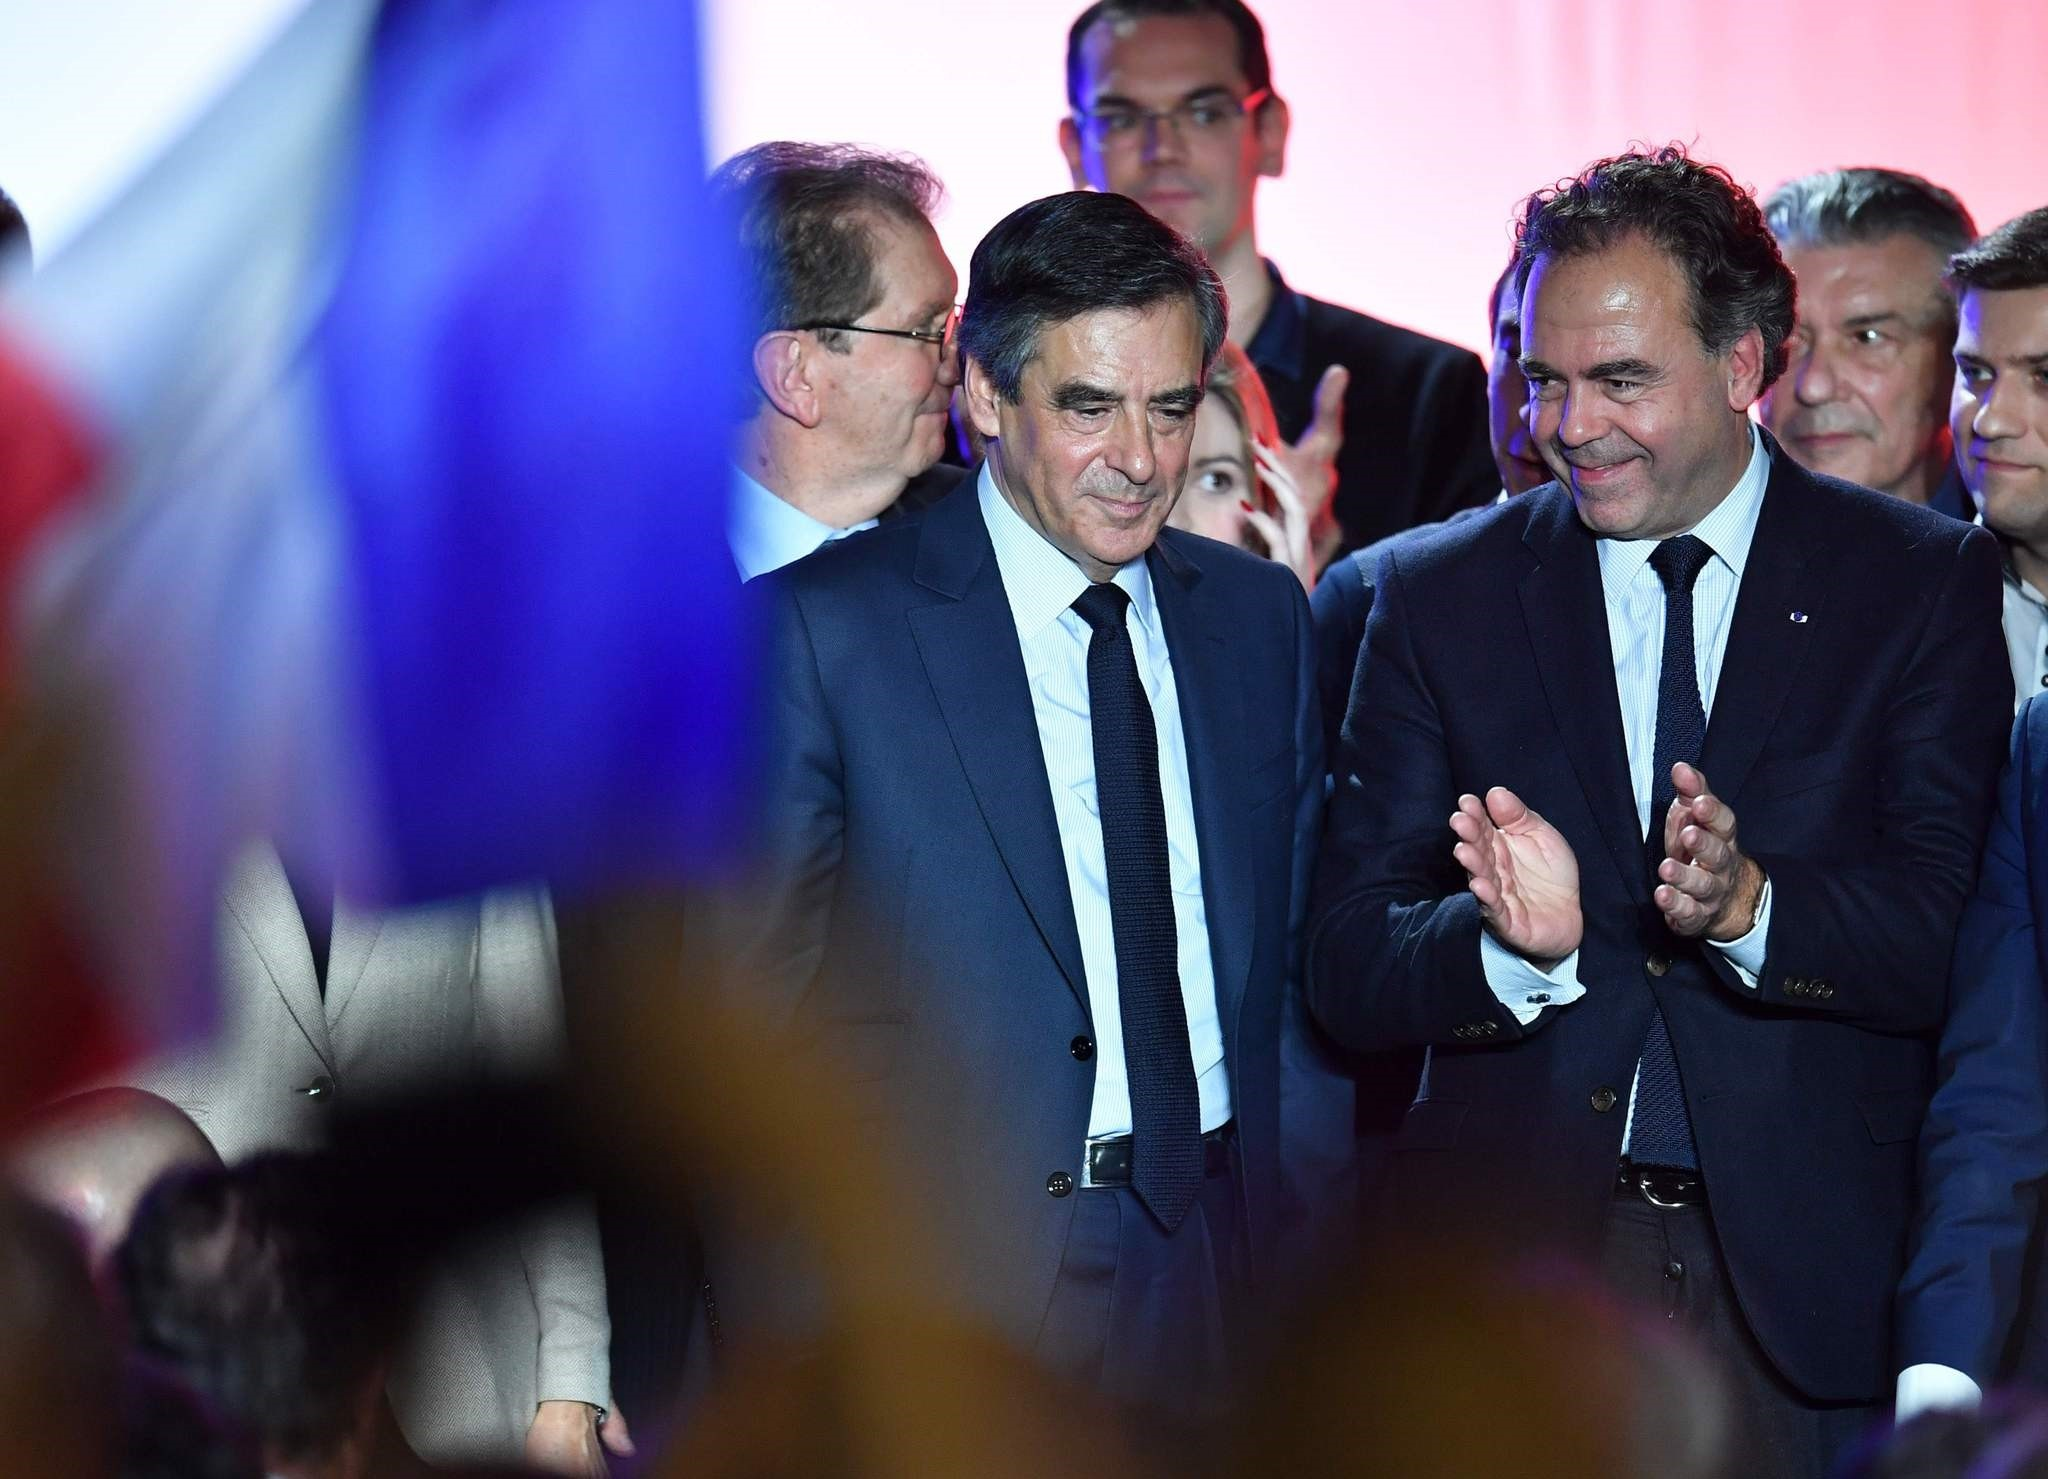 Francois Fillon (L) flanked by French lawmaker Luc Chatel(R) react on March 2, 2017 during a campaign rally on March 2, 2017 in Nu00eemes, southern France. (AFP Photo)